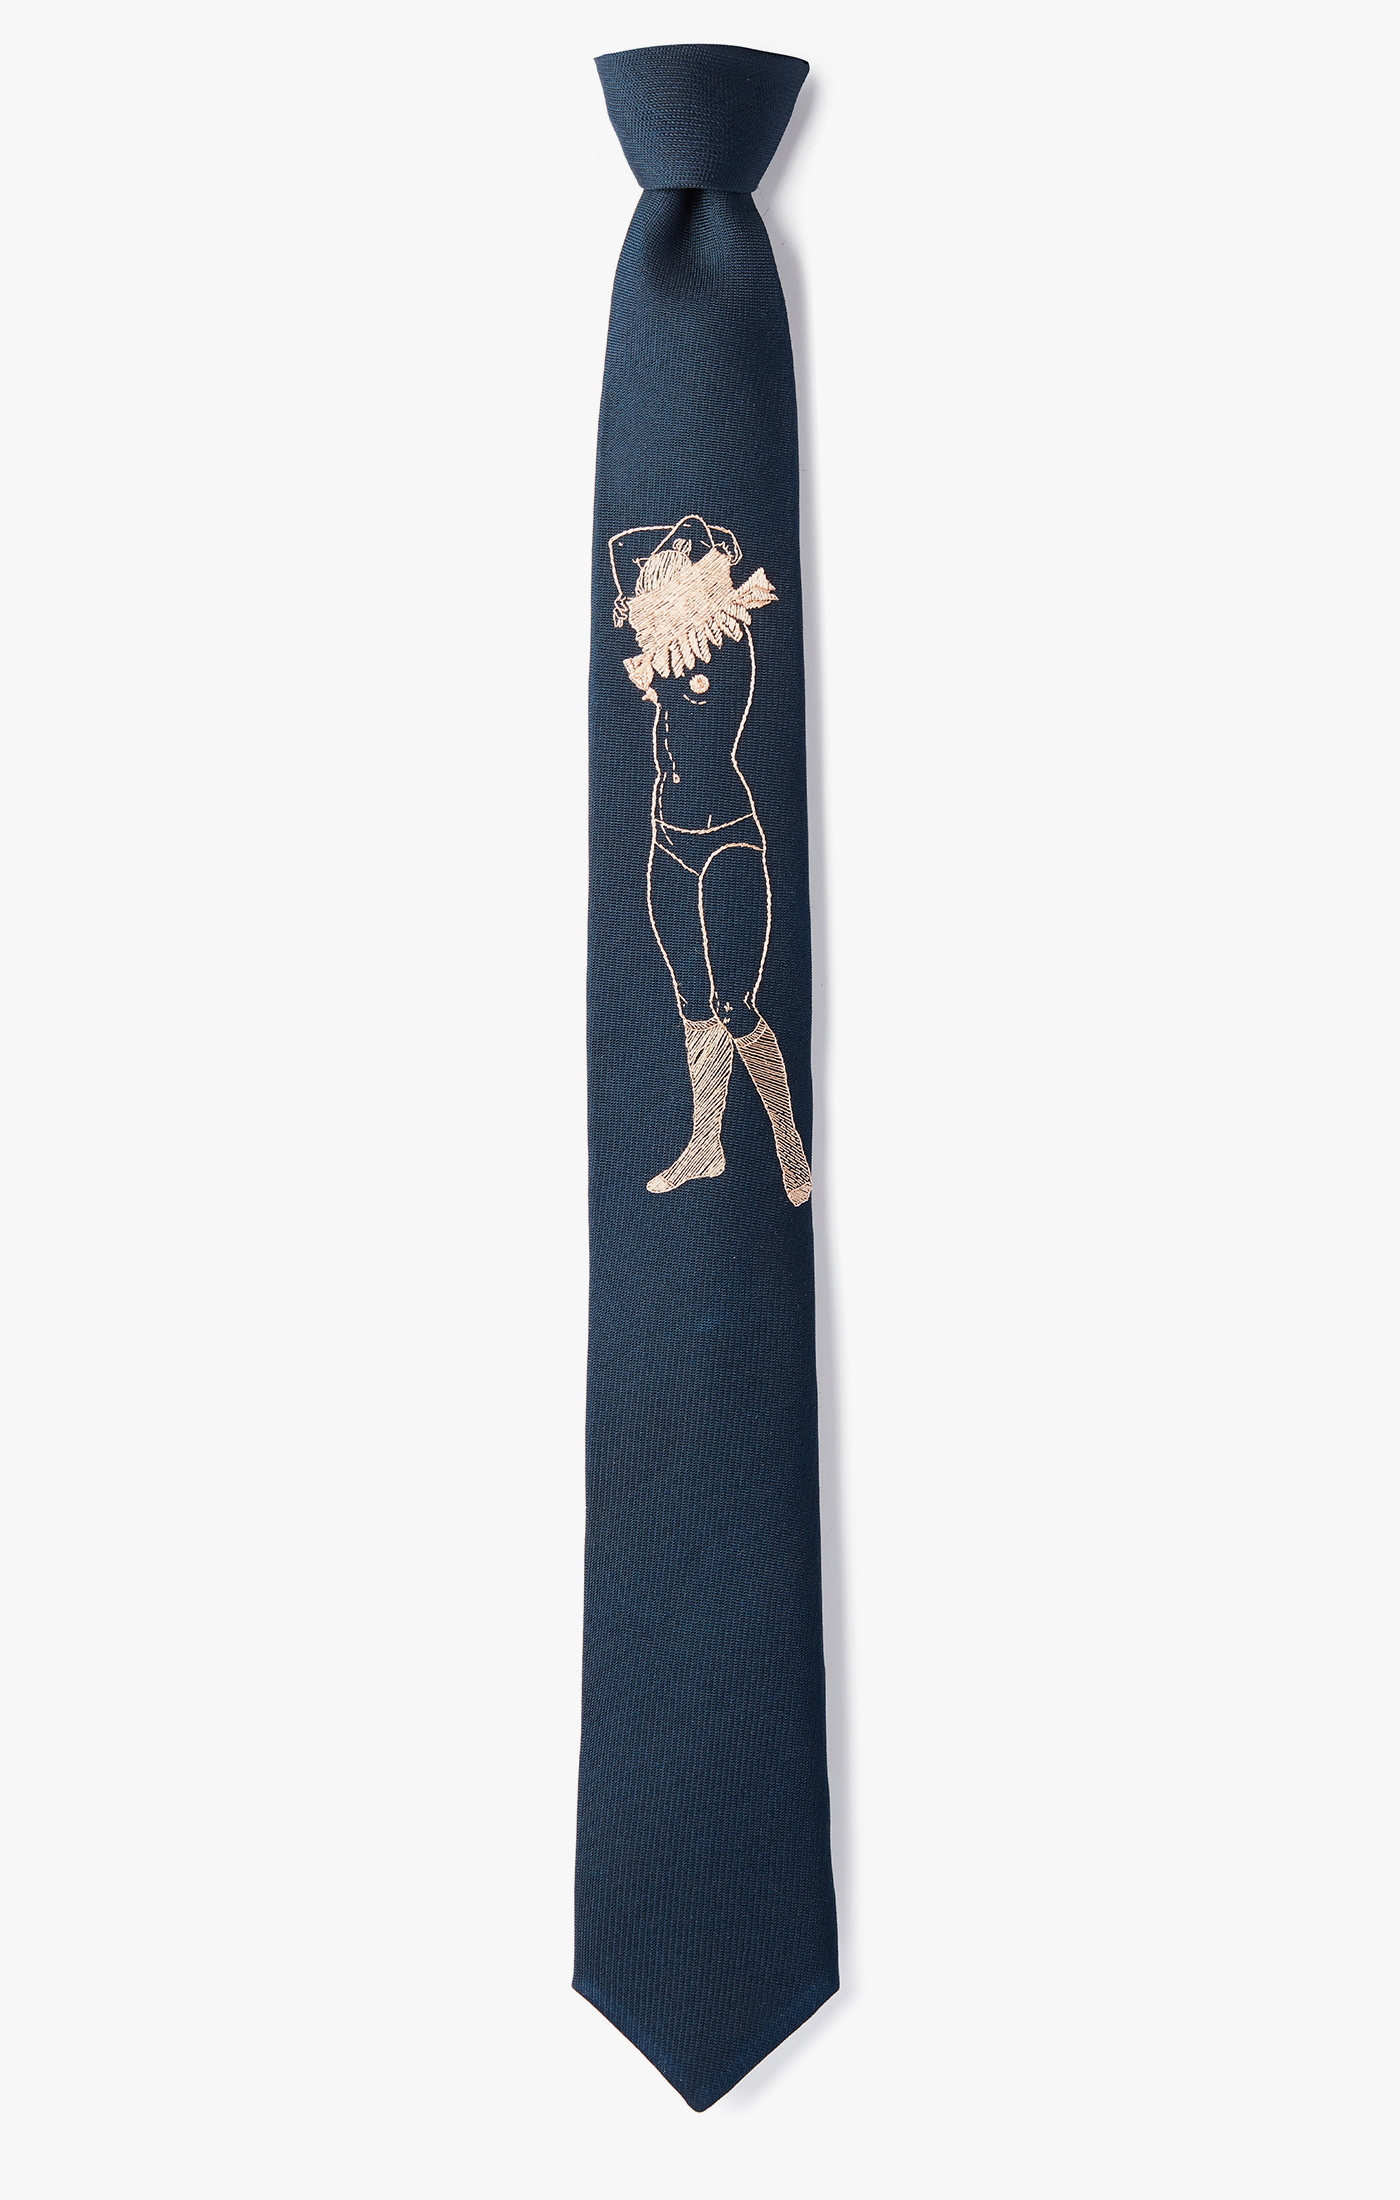 Image of Embroidered 'Wardrobe Change' Necktie